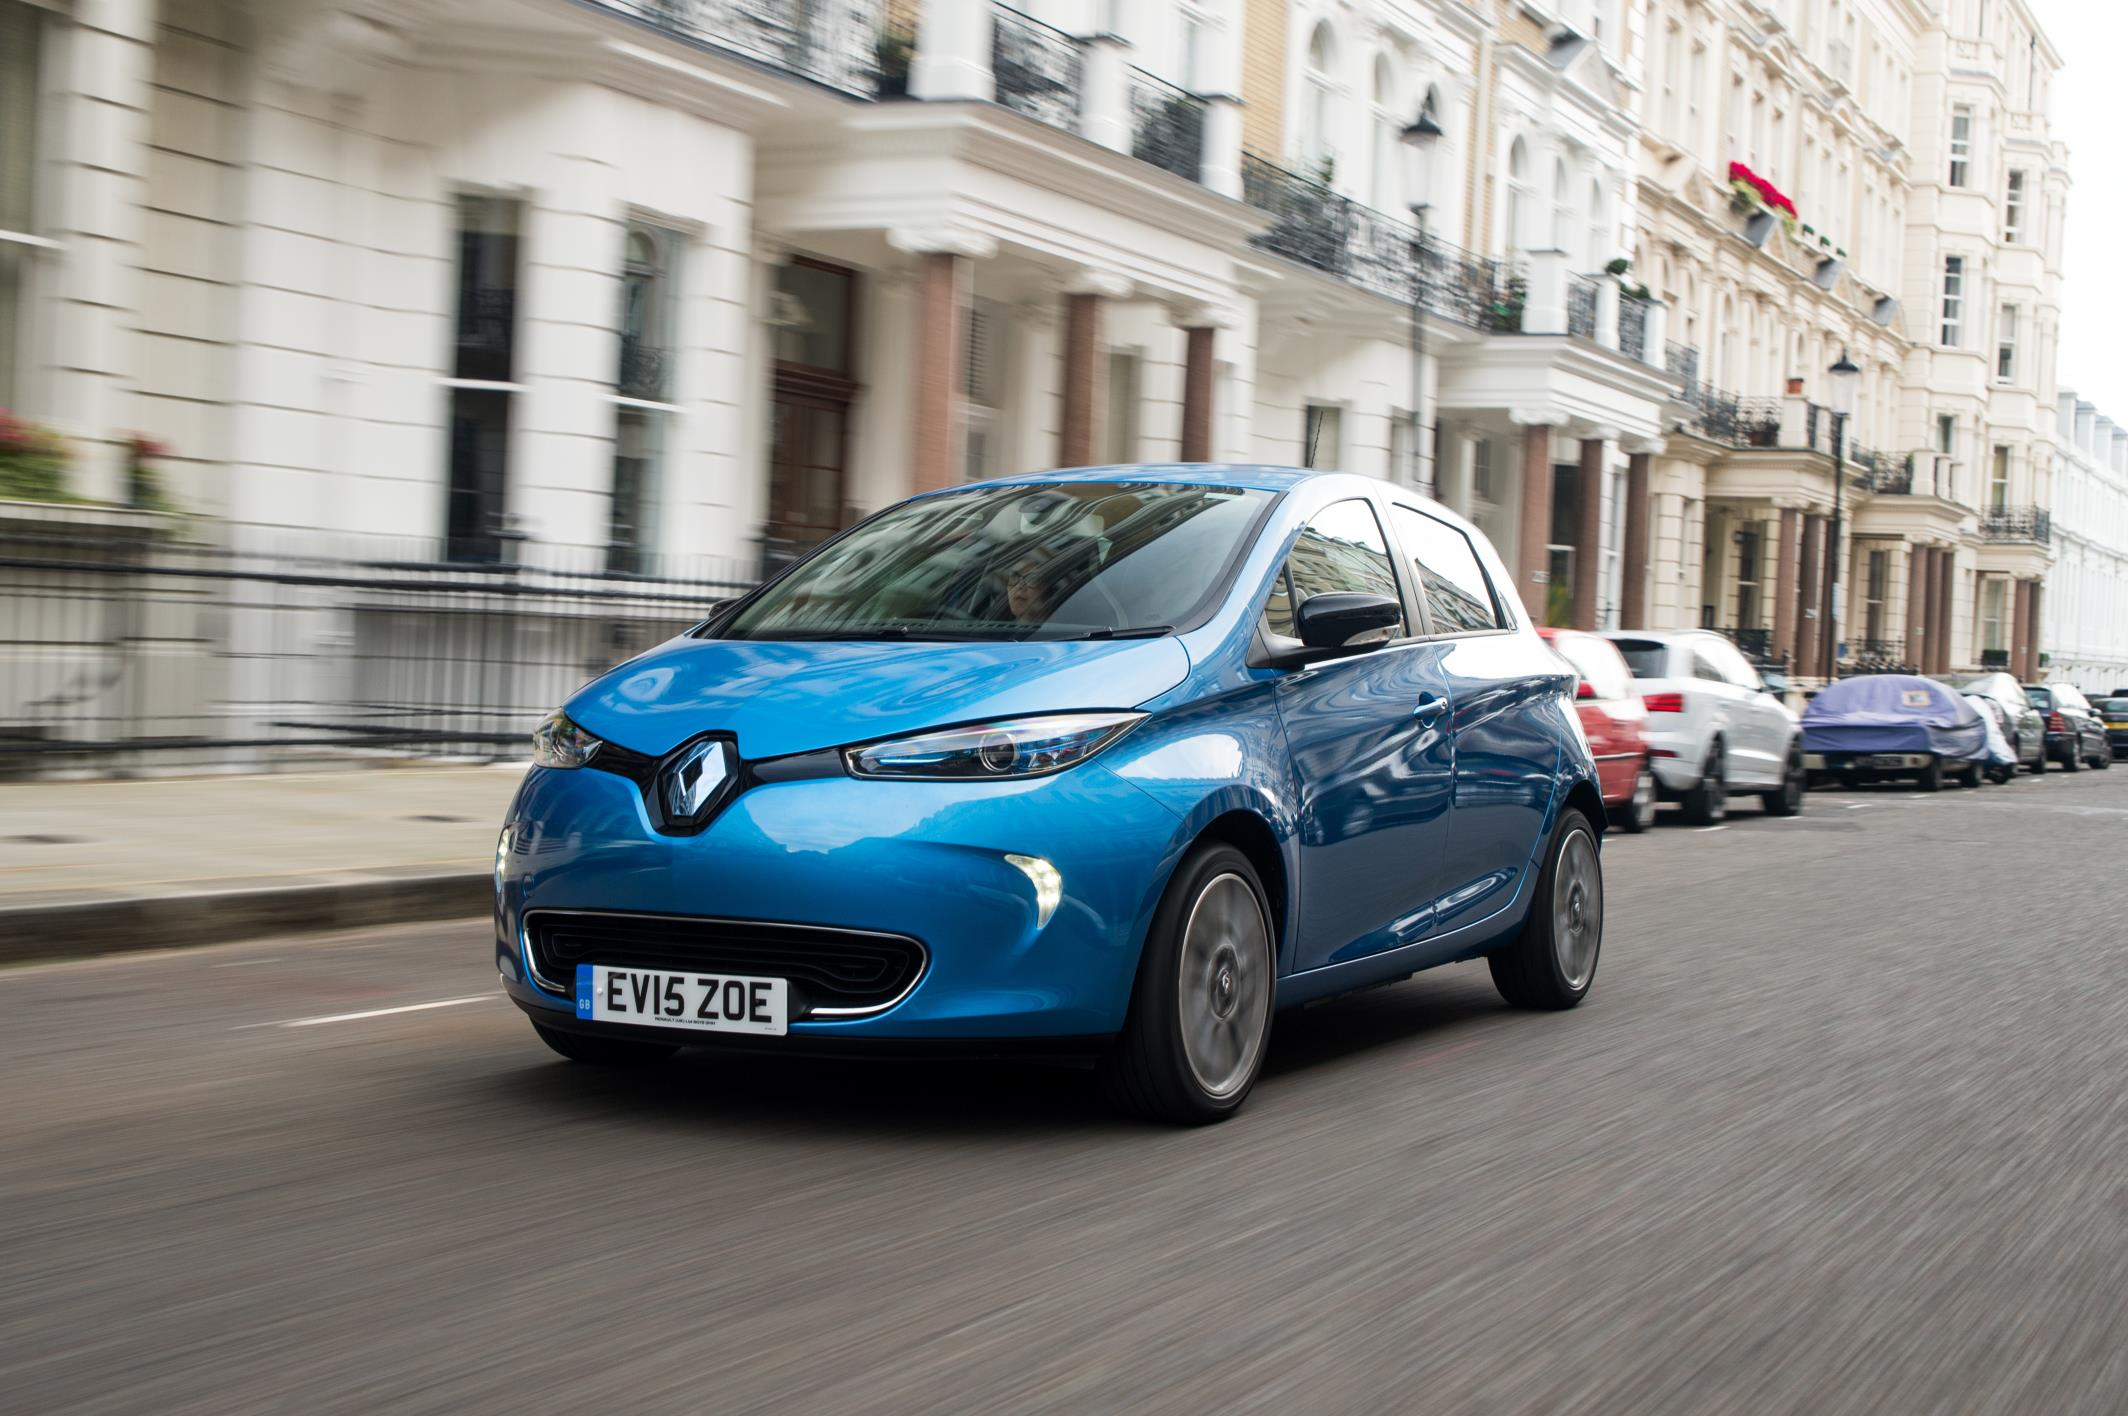 Renault Zoe in the city